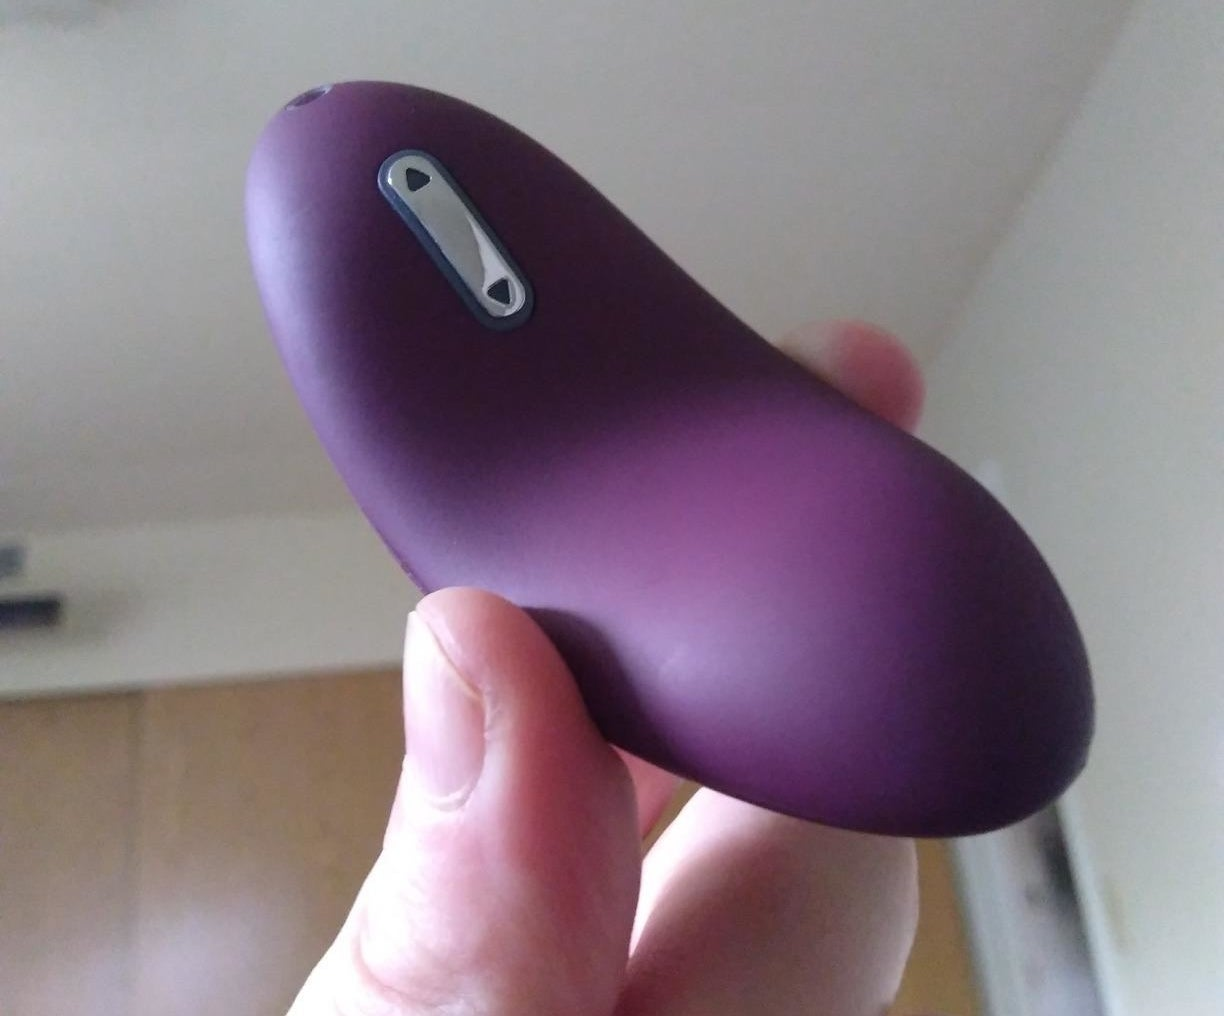 A reviewer holds the purple vibrator